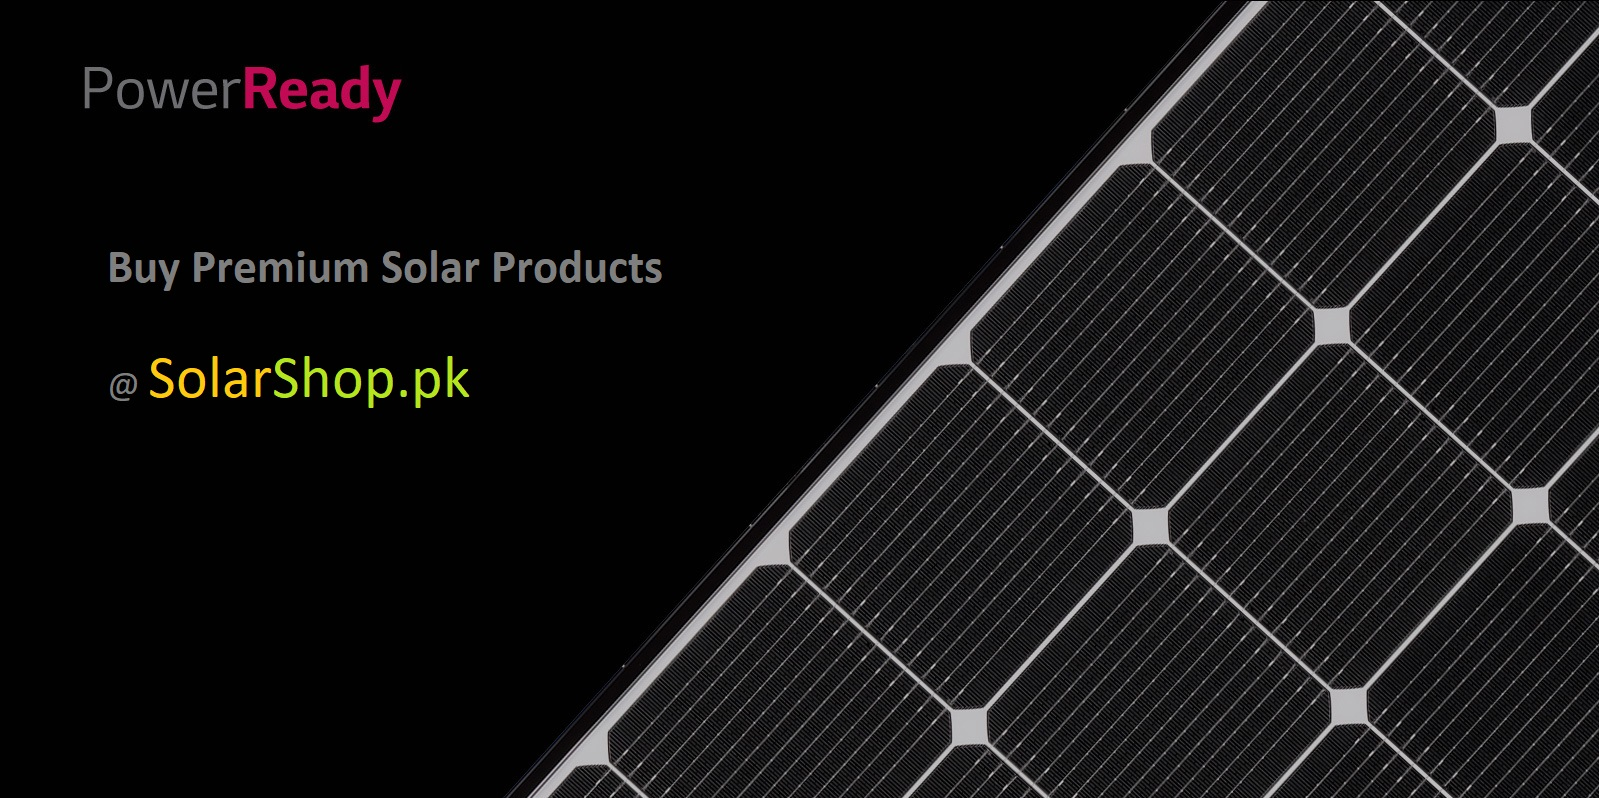 lg-solar-powerready